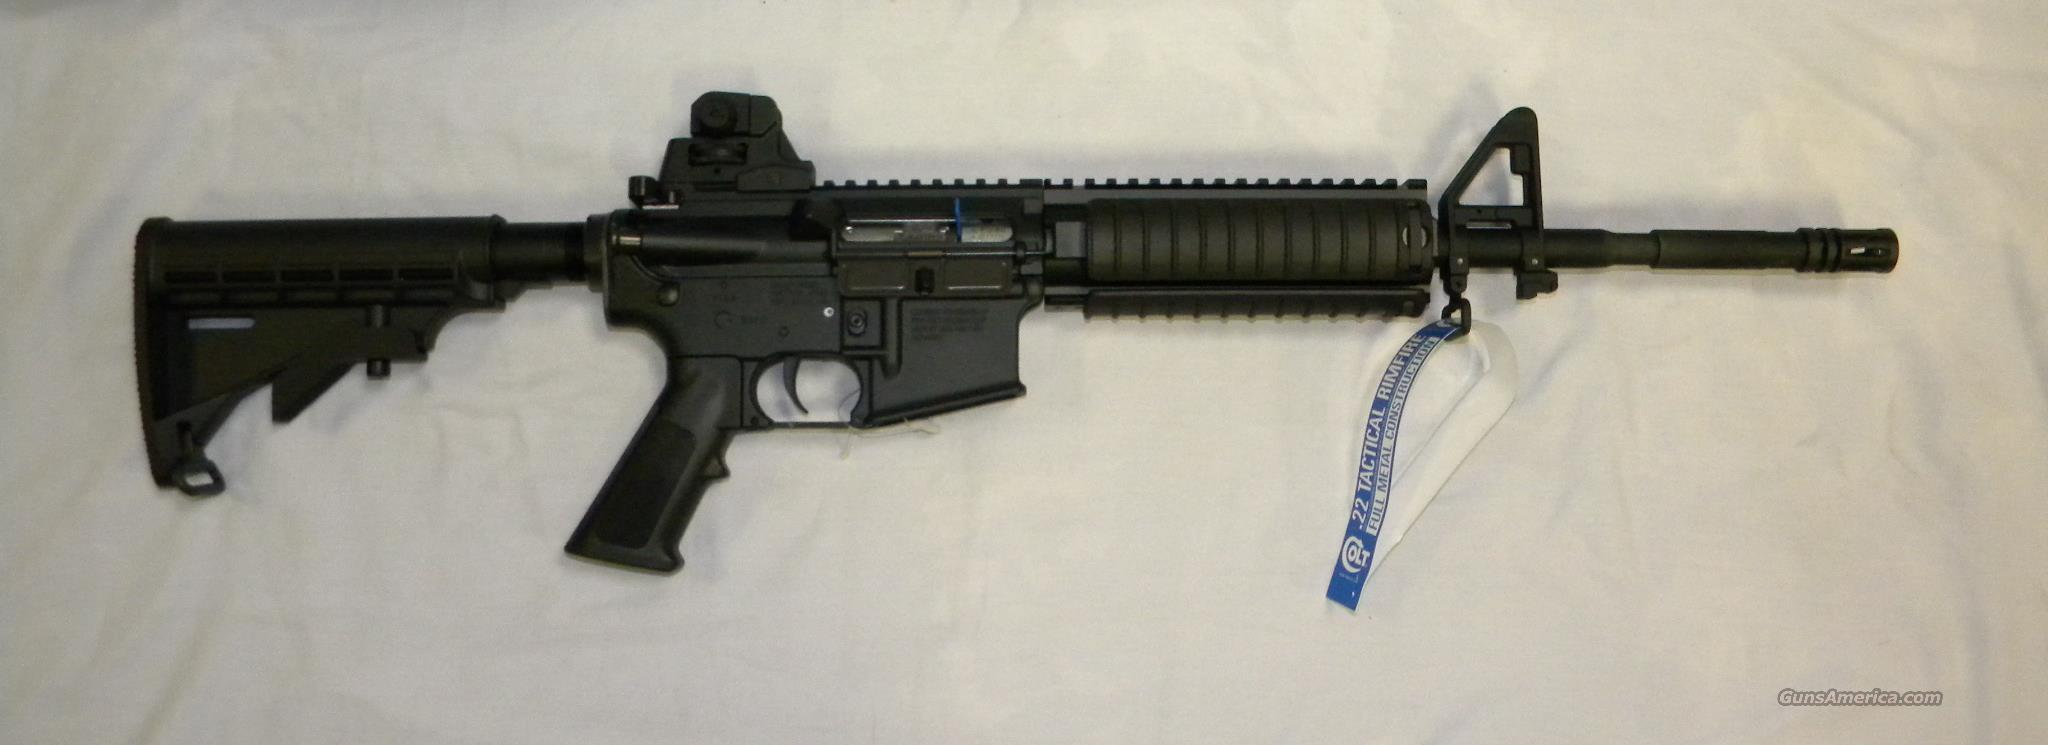 "Colt ""M4 OPS"" Carbine, .22 LR, Made In Germany By Walther  Guns > Rifles > Colt Military/Tactical Rifles"